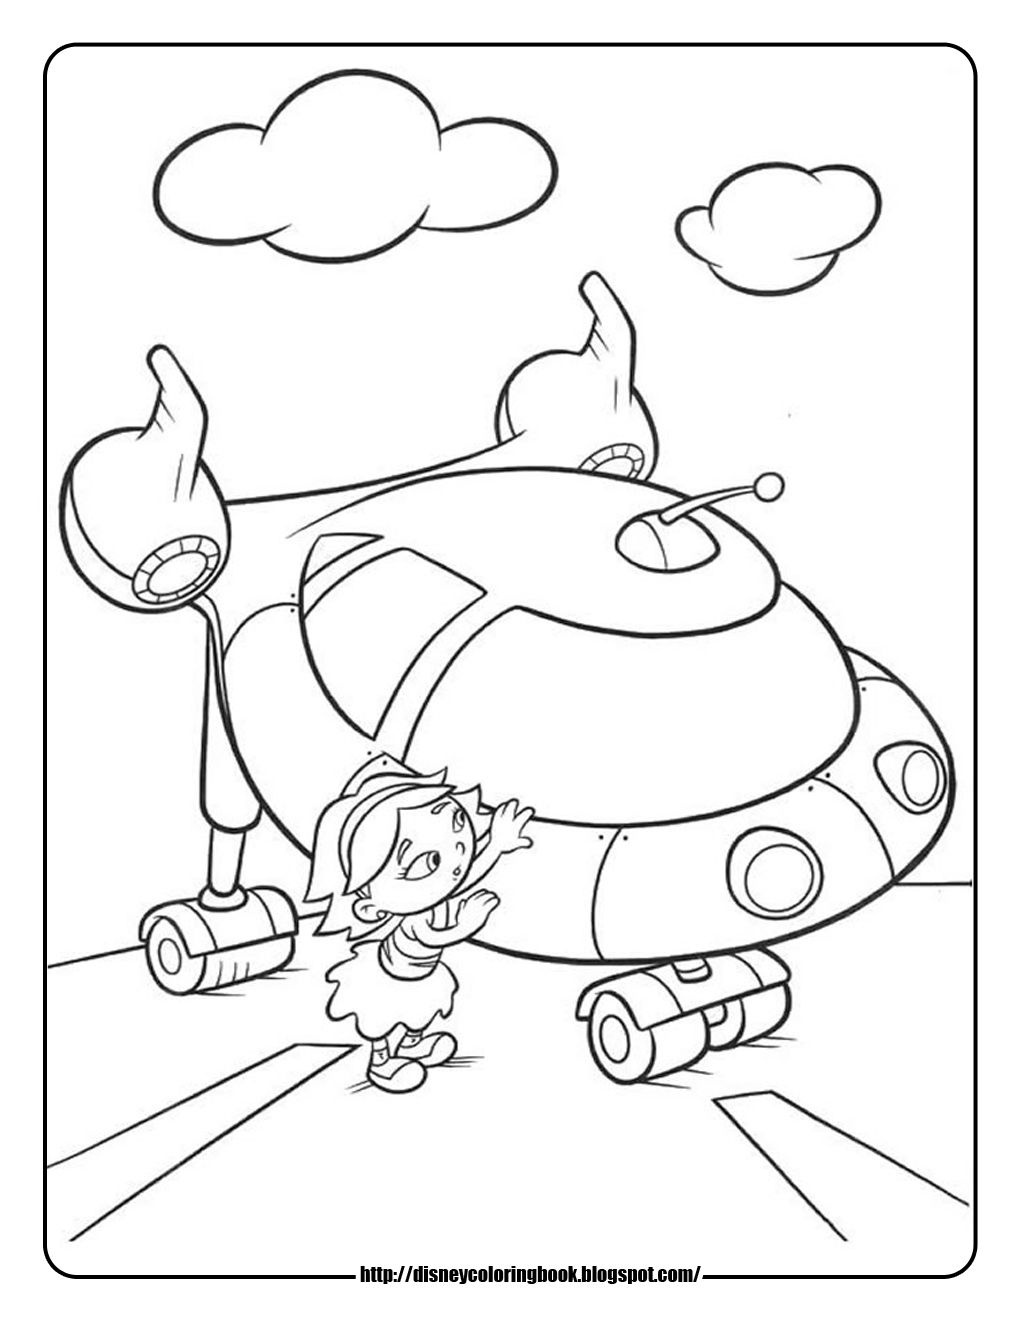 Pin By Elsie Poser On Little Einsteins Les Petits Einstein Cool Coloring Pages Toddler Coloring Book Cartoon Coloring Pages